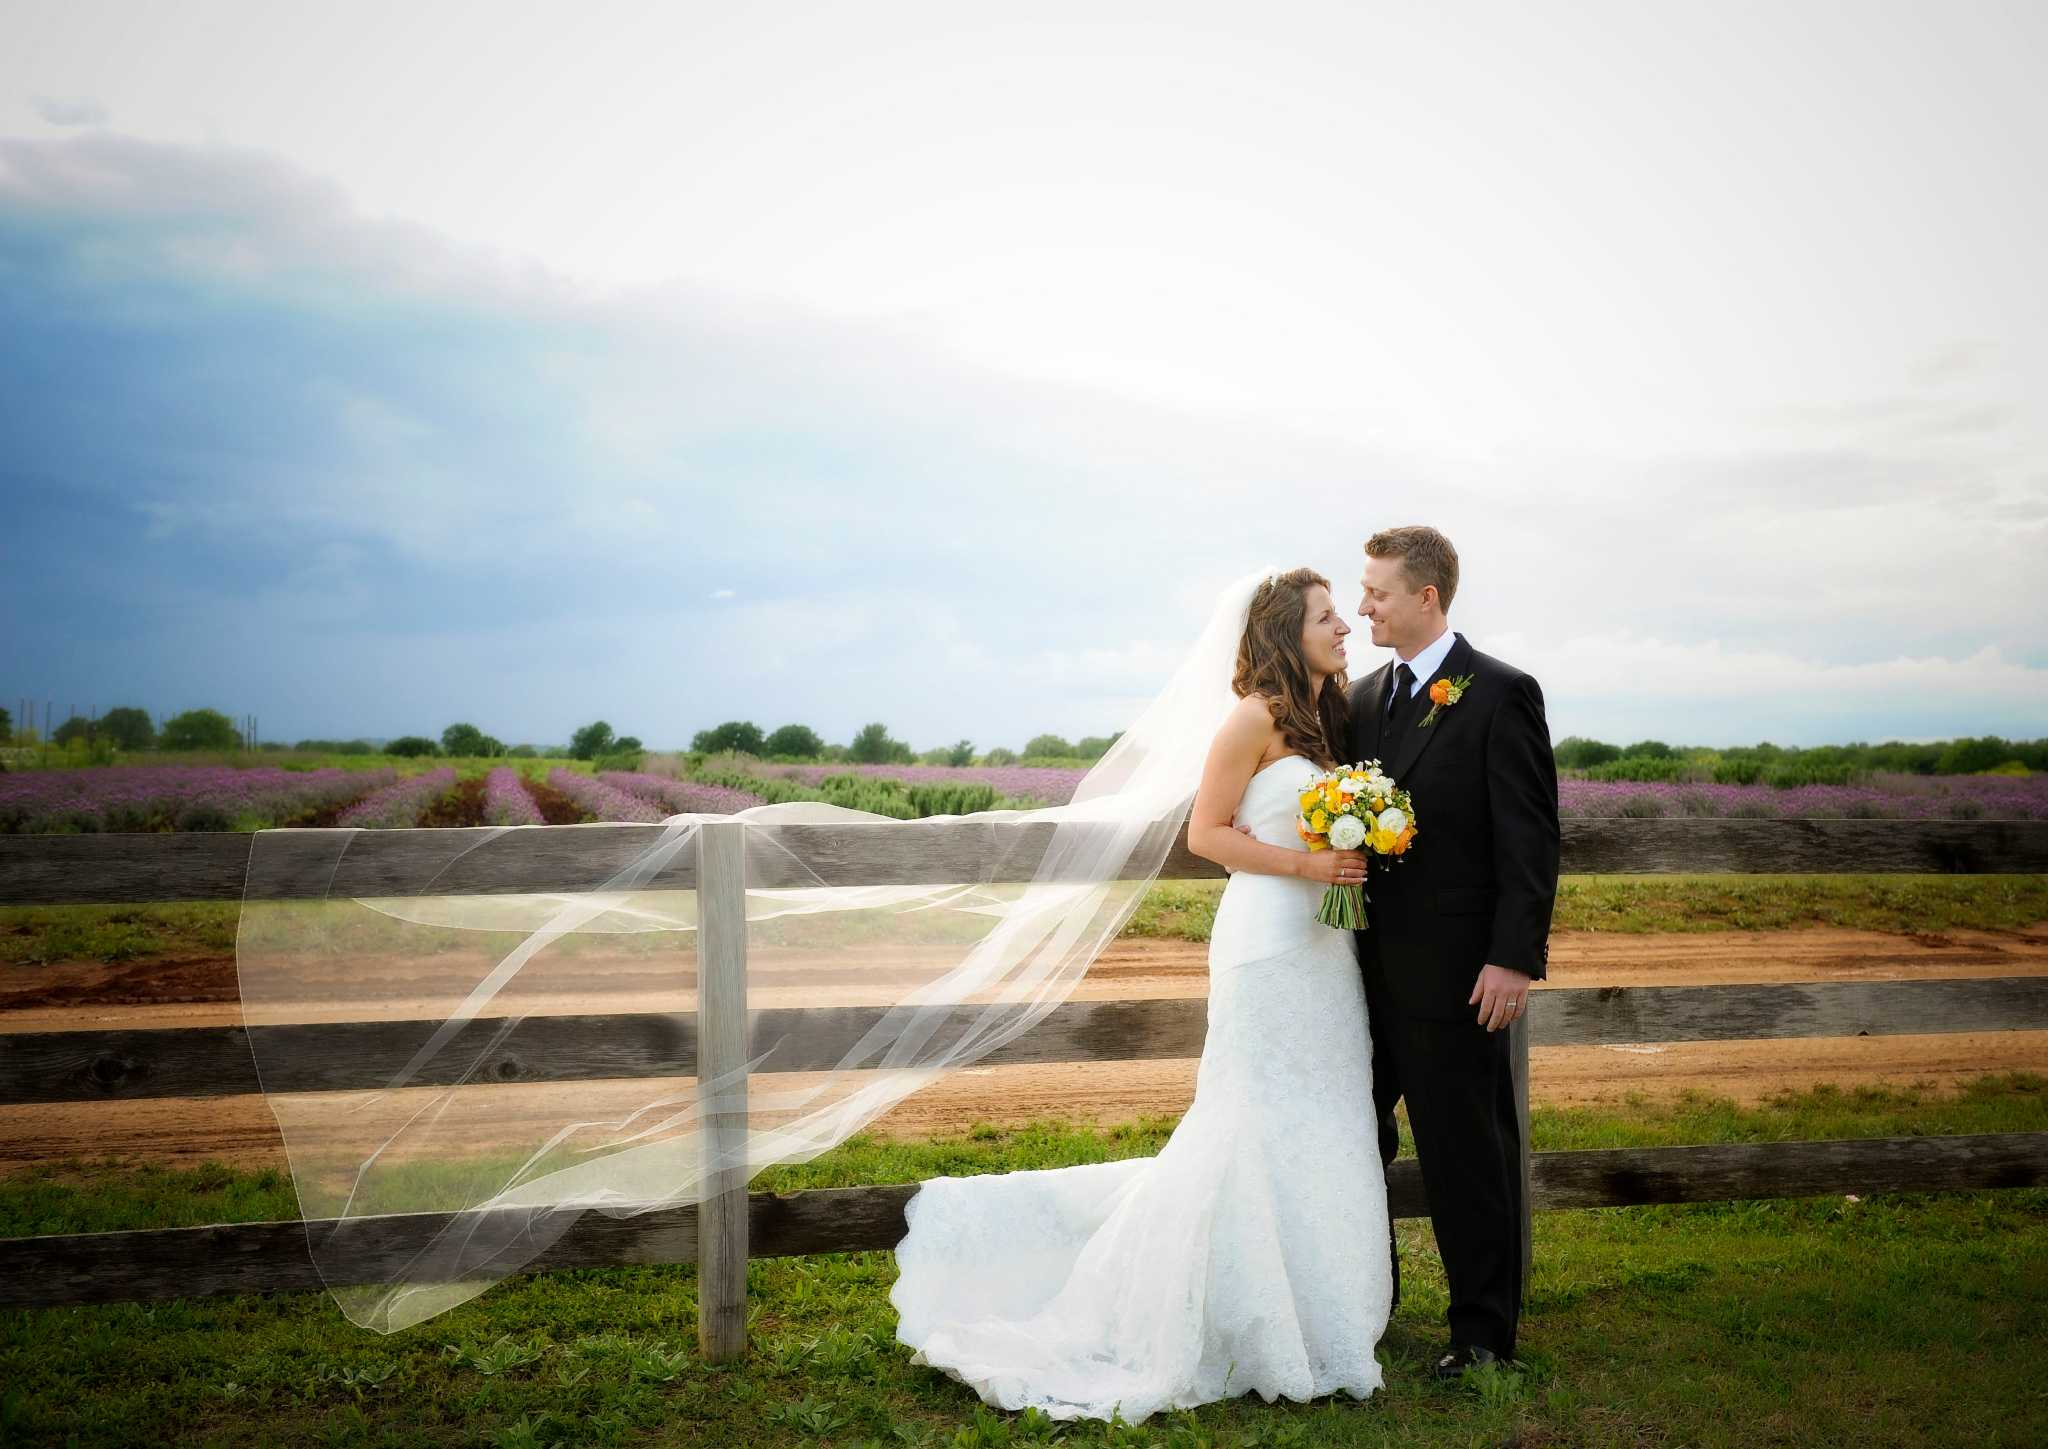 9 Great Places To Have A Texas Country Wedding